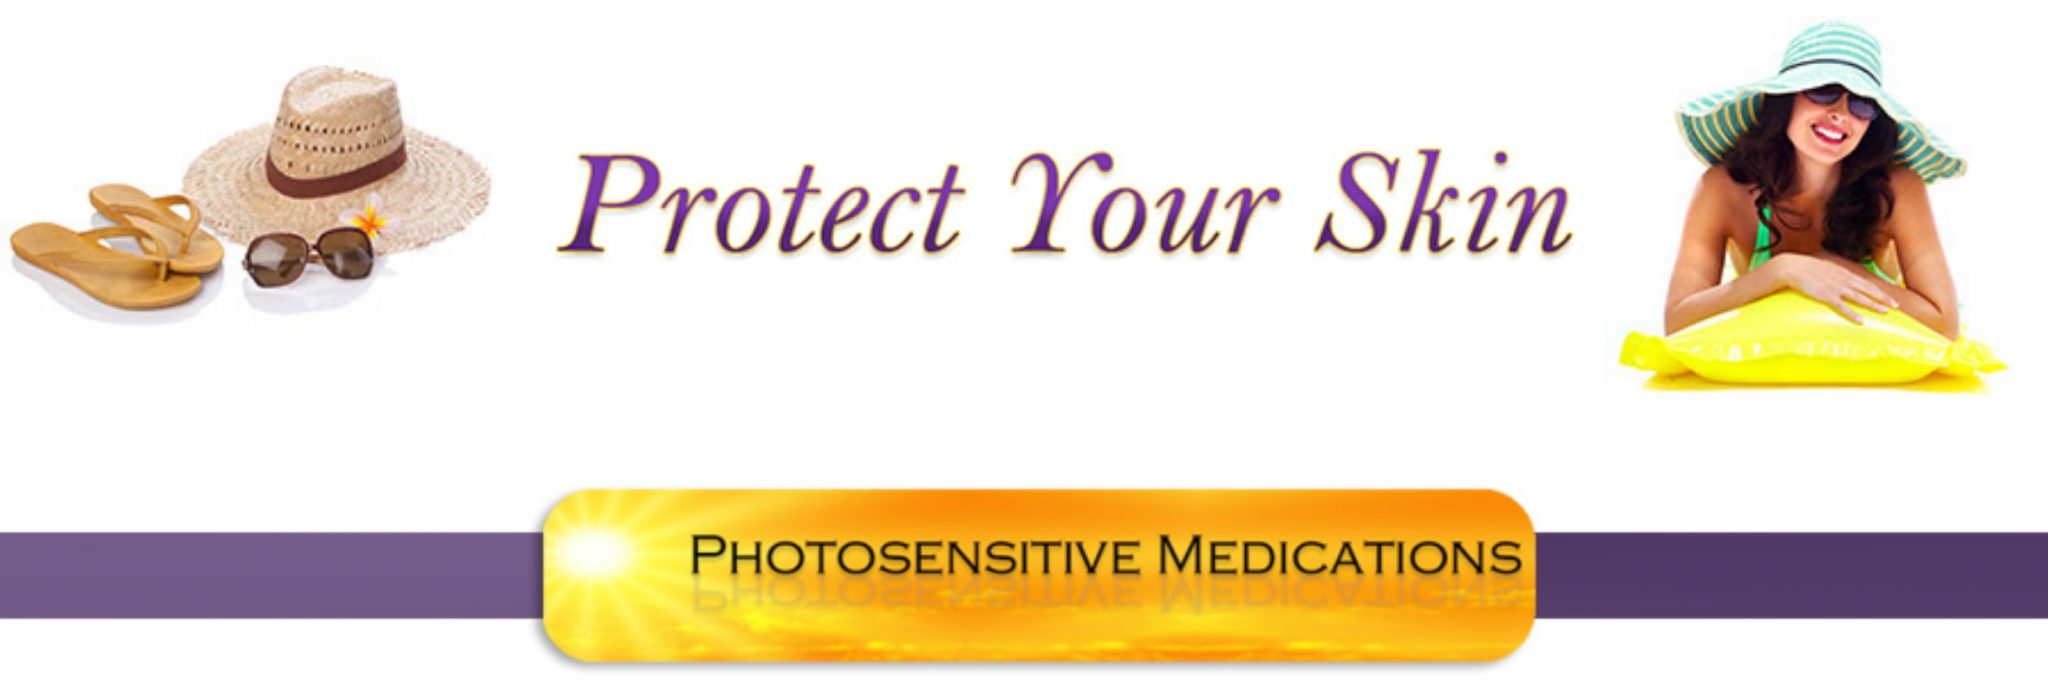 Protect Your Skin, photosensitive medications, sun sensitive, photo toxic drugs, topical, agents